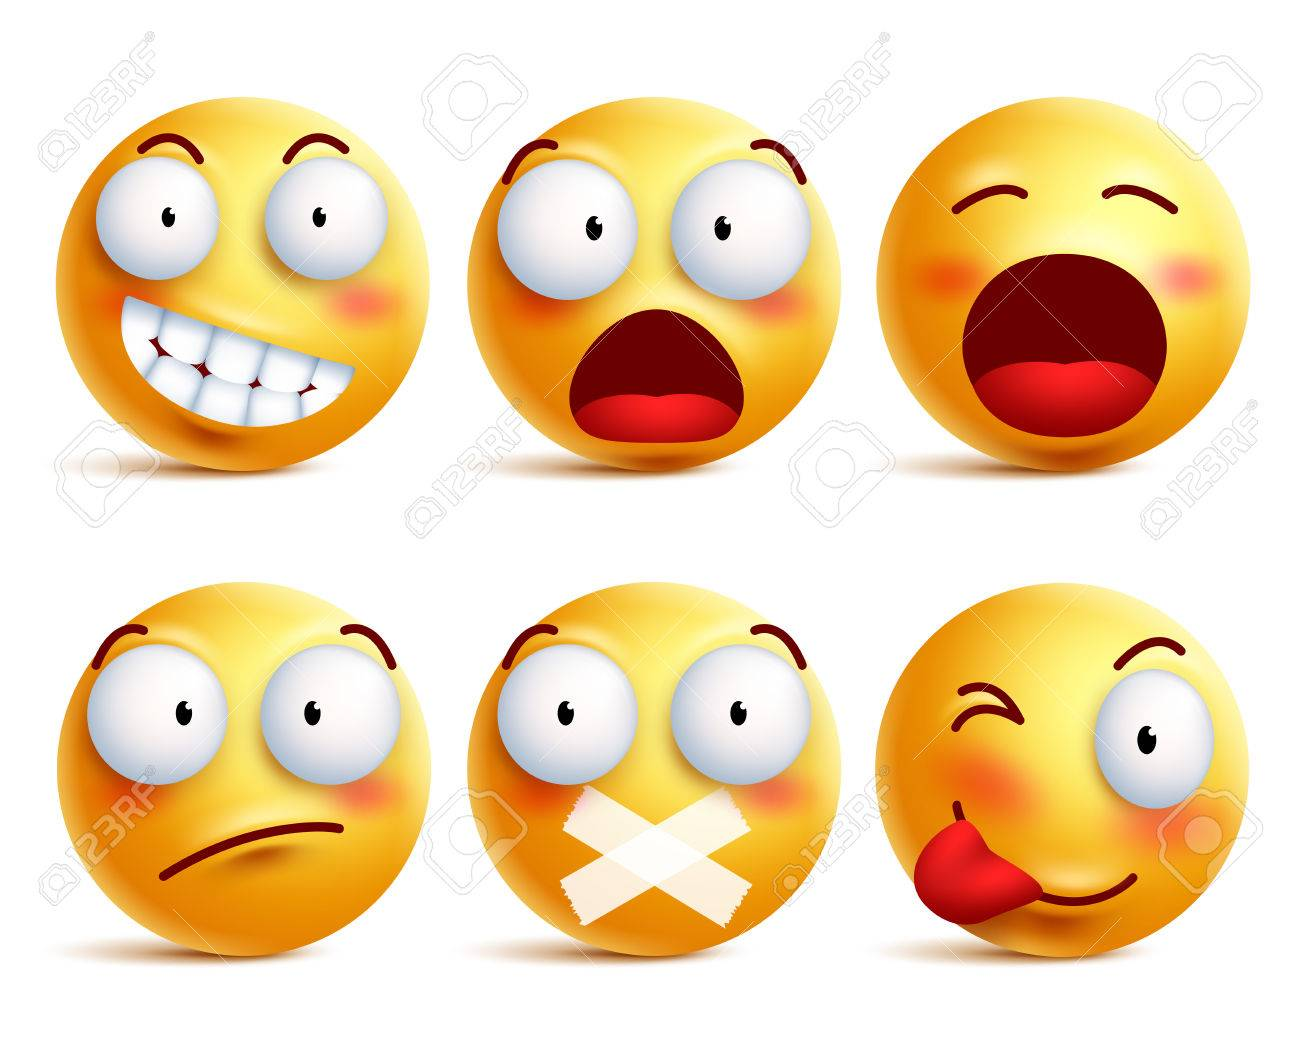 Smileys vector set. Smiley face icons or emoticons with facial expressions and emotions in yellow color isolated in white background. Vector illustration. - 81690491